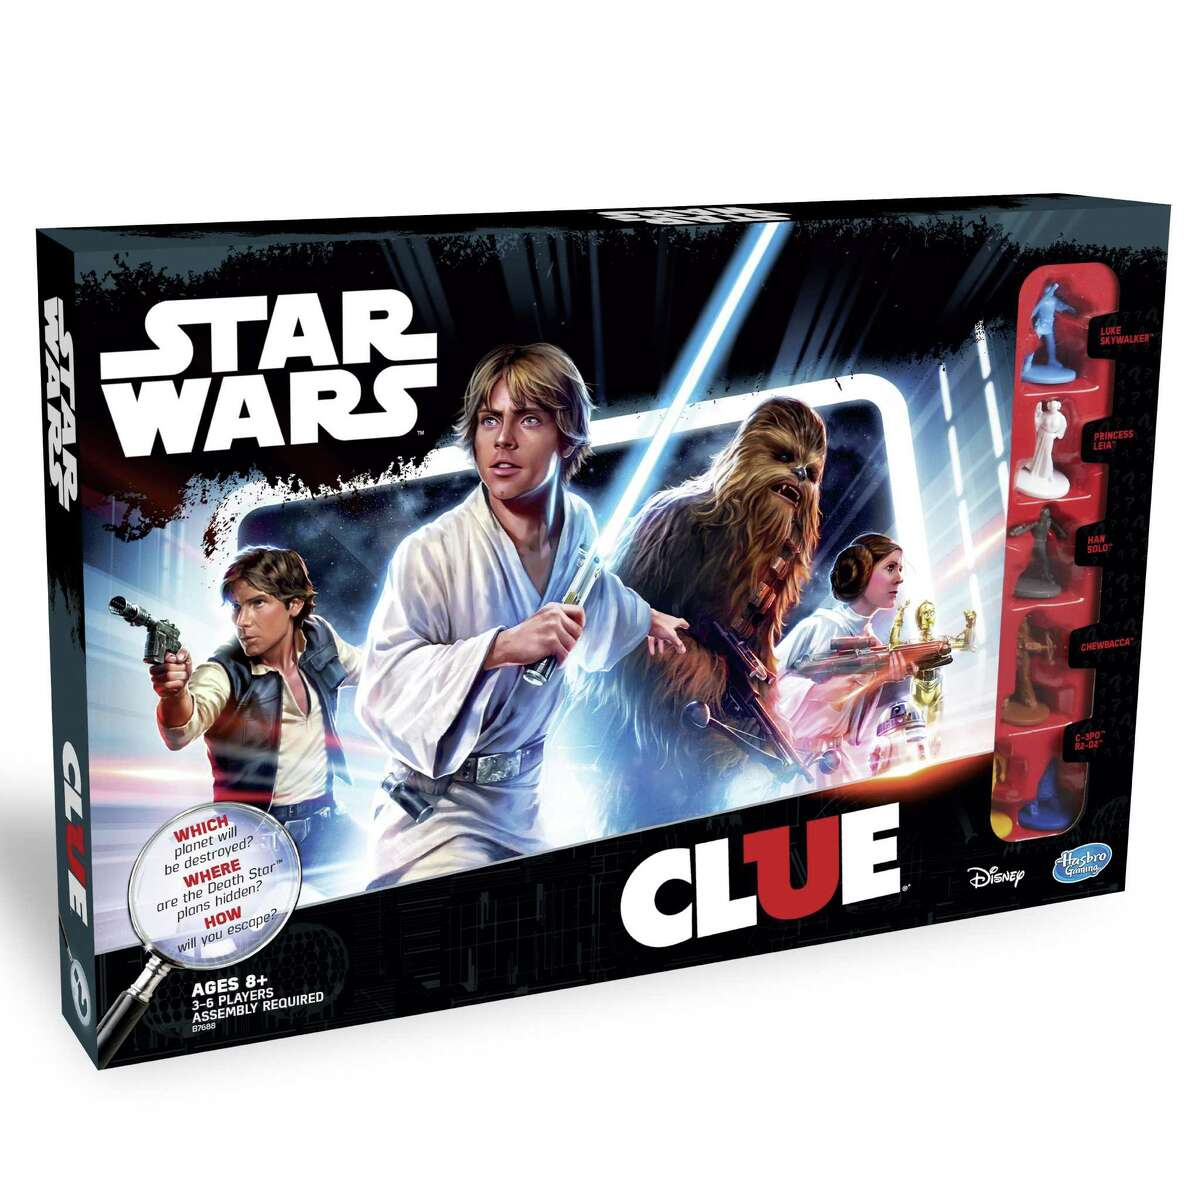 """Clue Game: """"Star Wars"""" Edition ($24.99, hasbrotoyshop.com): Well it wasn't Col. Mustard in the trash compactor. The classic whodunnit board game Clue gets a murder-free Imperial makeover, as you race through a 3-D version of the Death Star to figure out which planet is next on Darth Vader's hit list, which room has the secret Death Star plans, and which vehicle is your means of escape."""